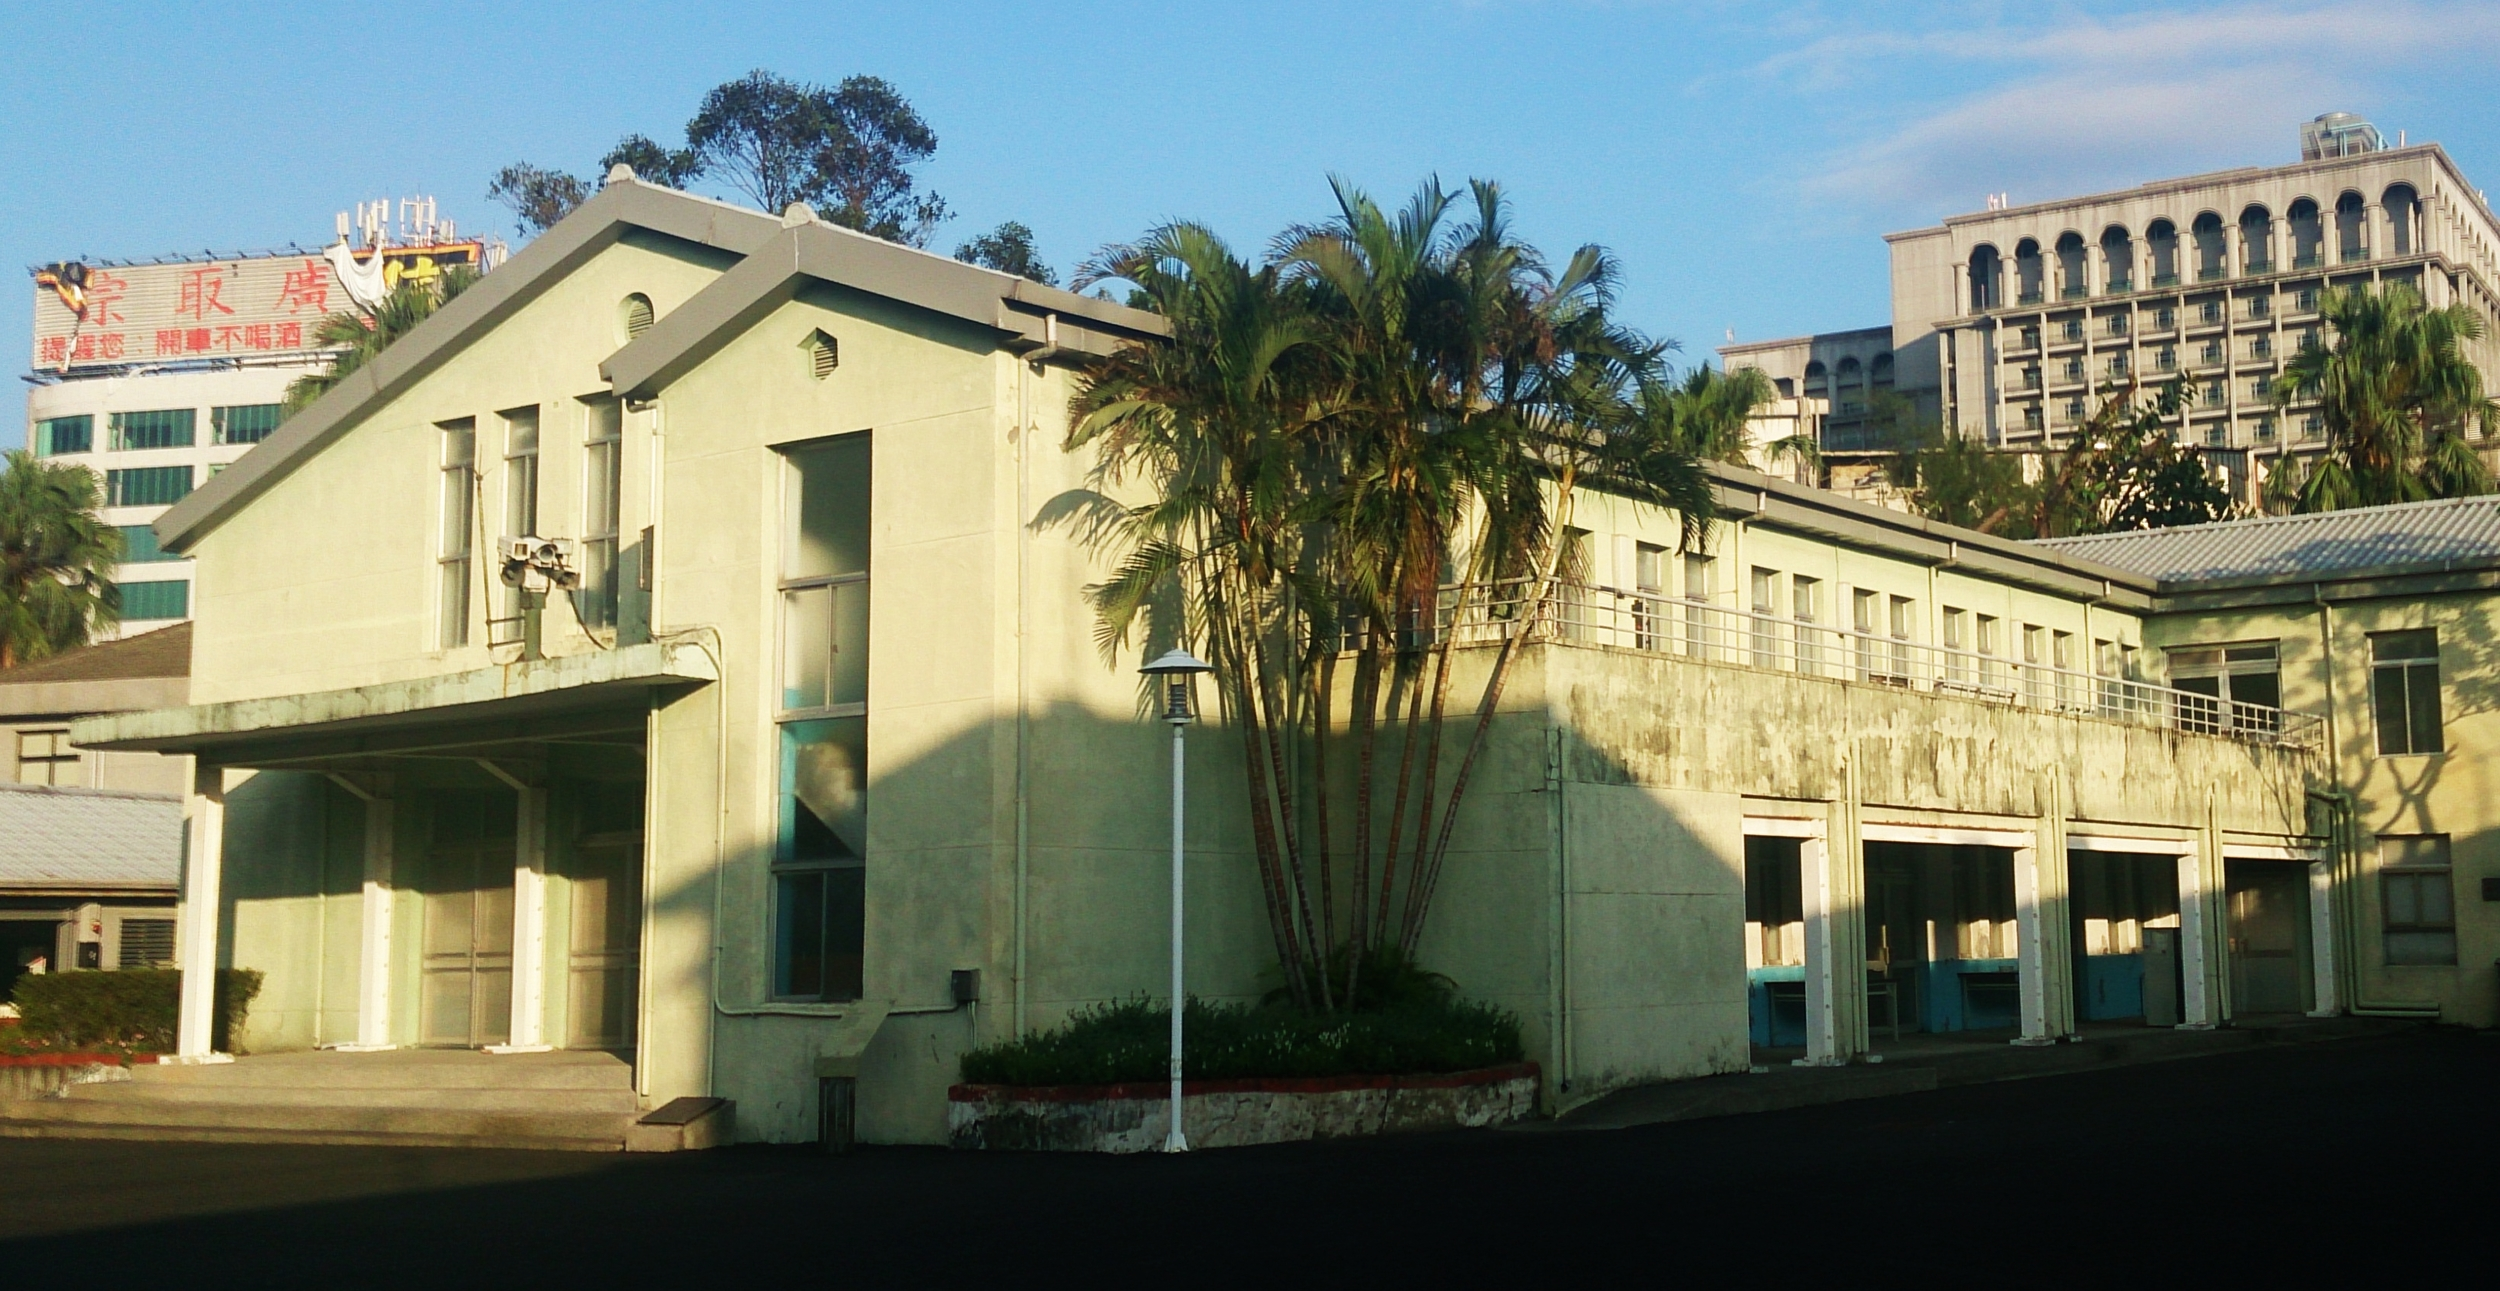 An old meeting hall and the military barracks.